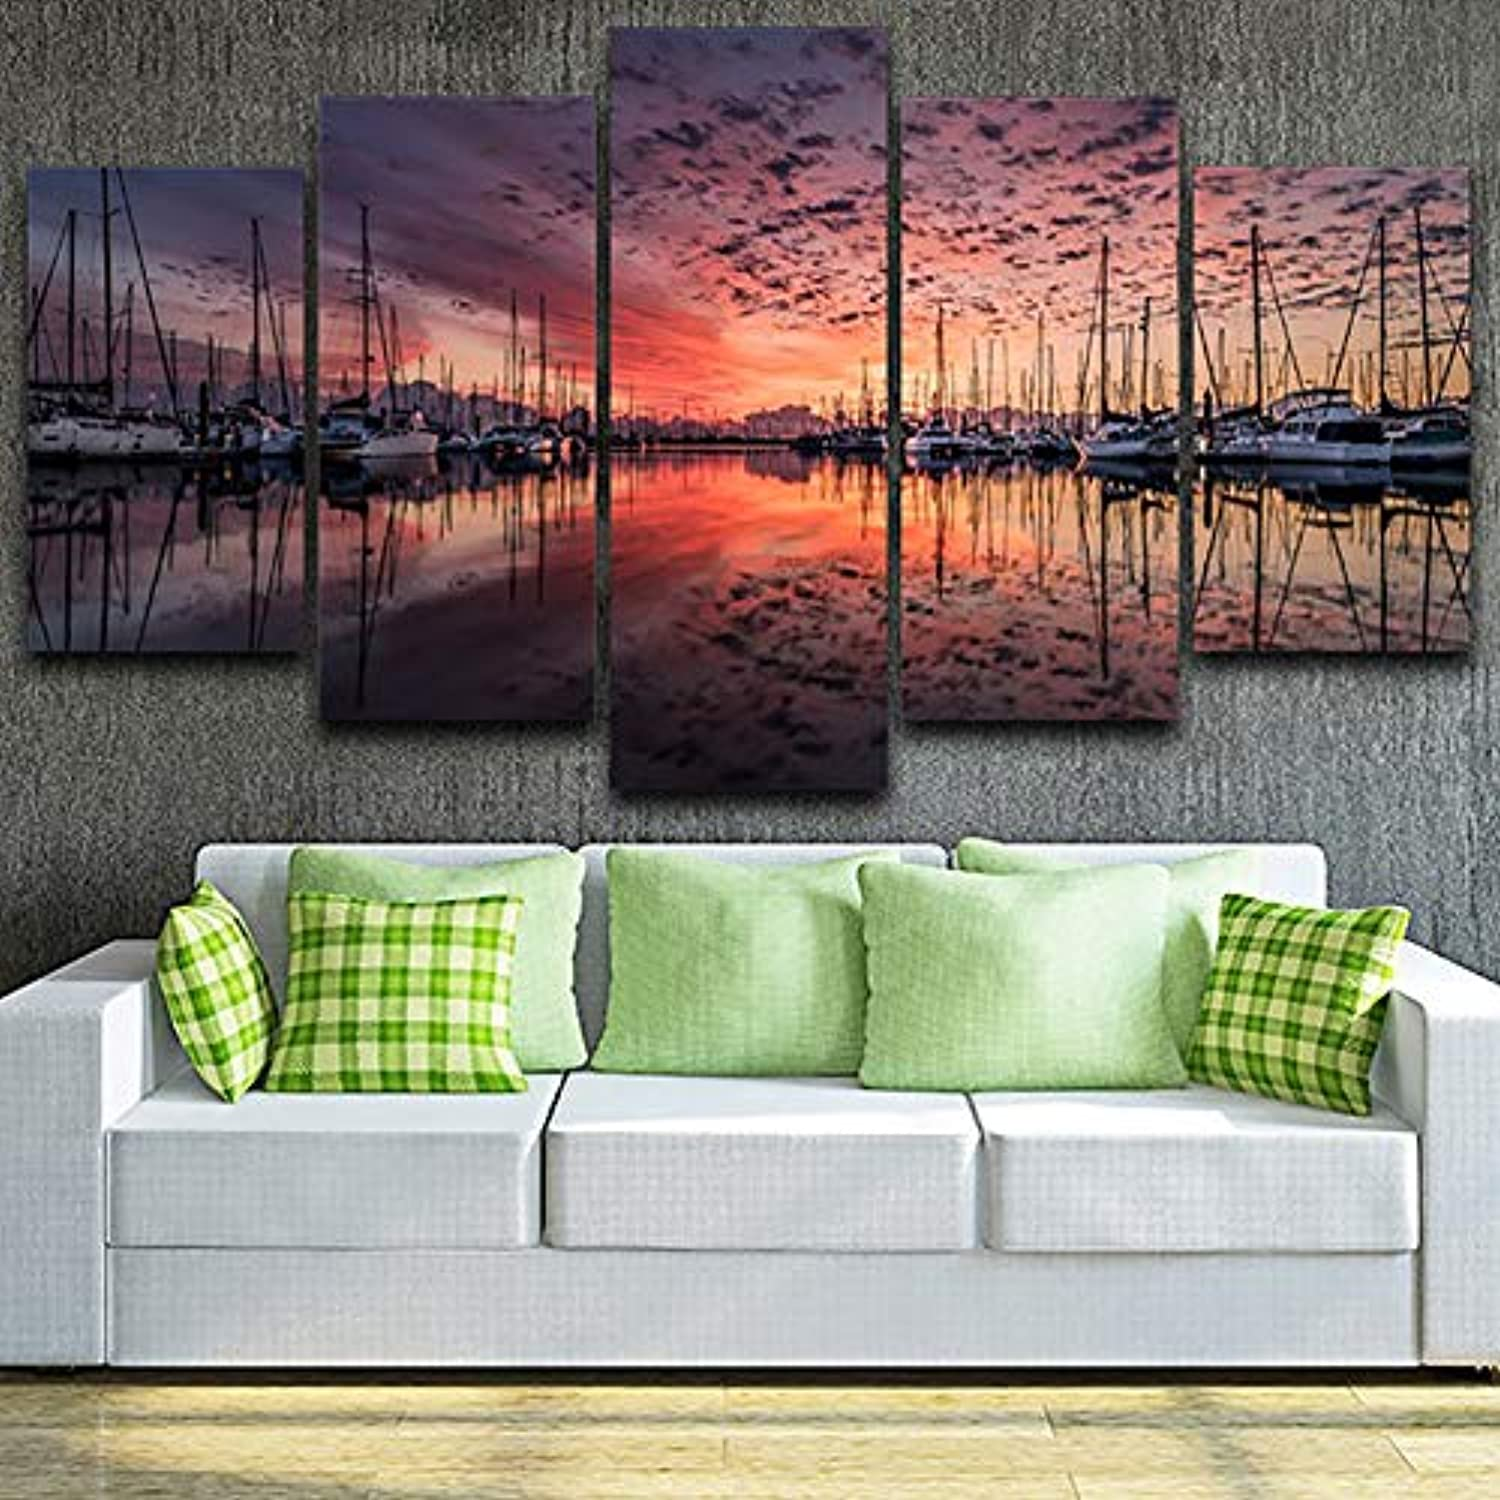 Home Decor Canvas Painting Poster Wall 5 Panel Harbor Sunset Landscape Modern HD Framework Art Living Room Printed Picture